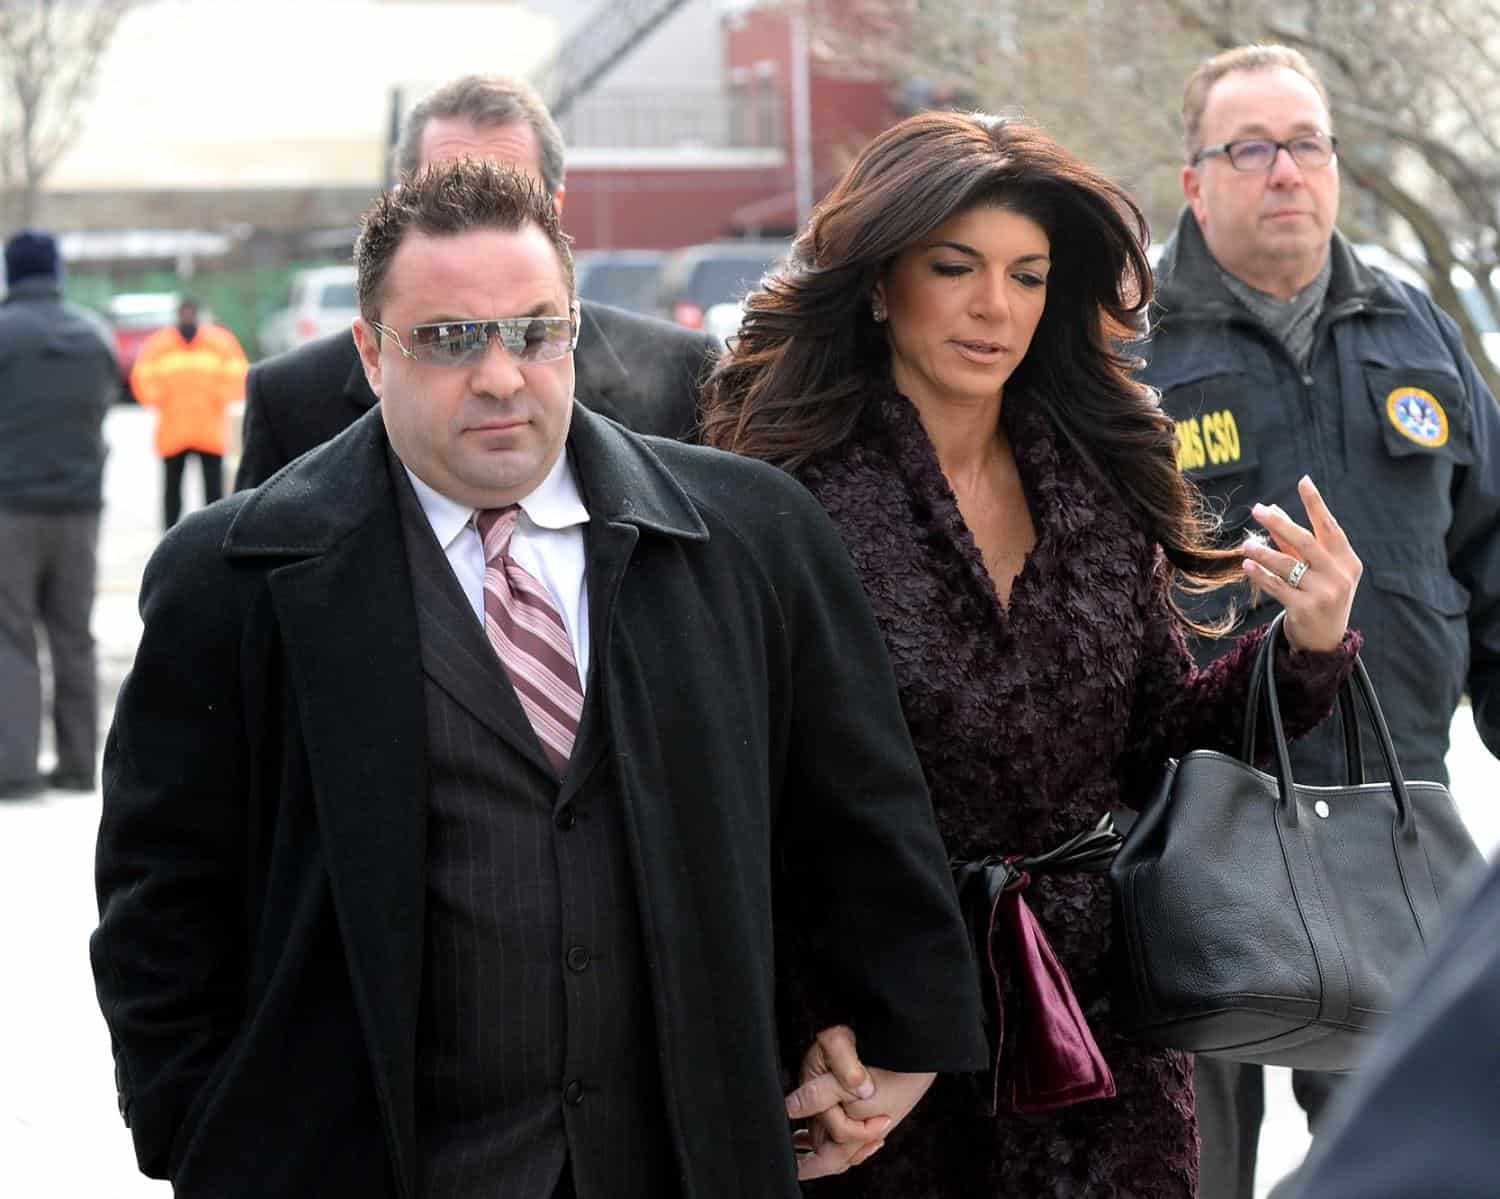 RHONJ Star Joe Giudice's Deportation Drama Centers Around A 2010 Bank Settlement